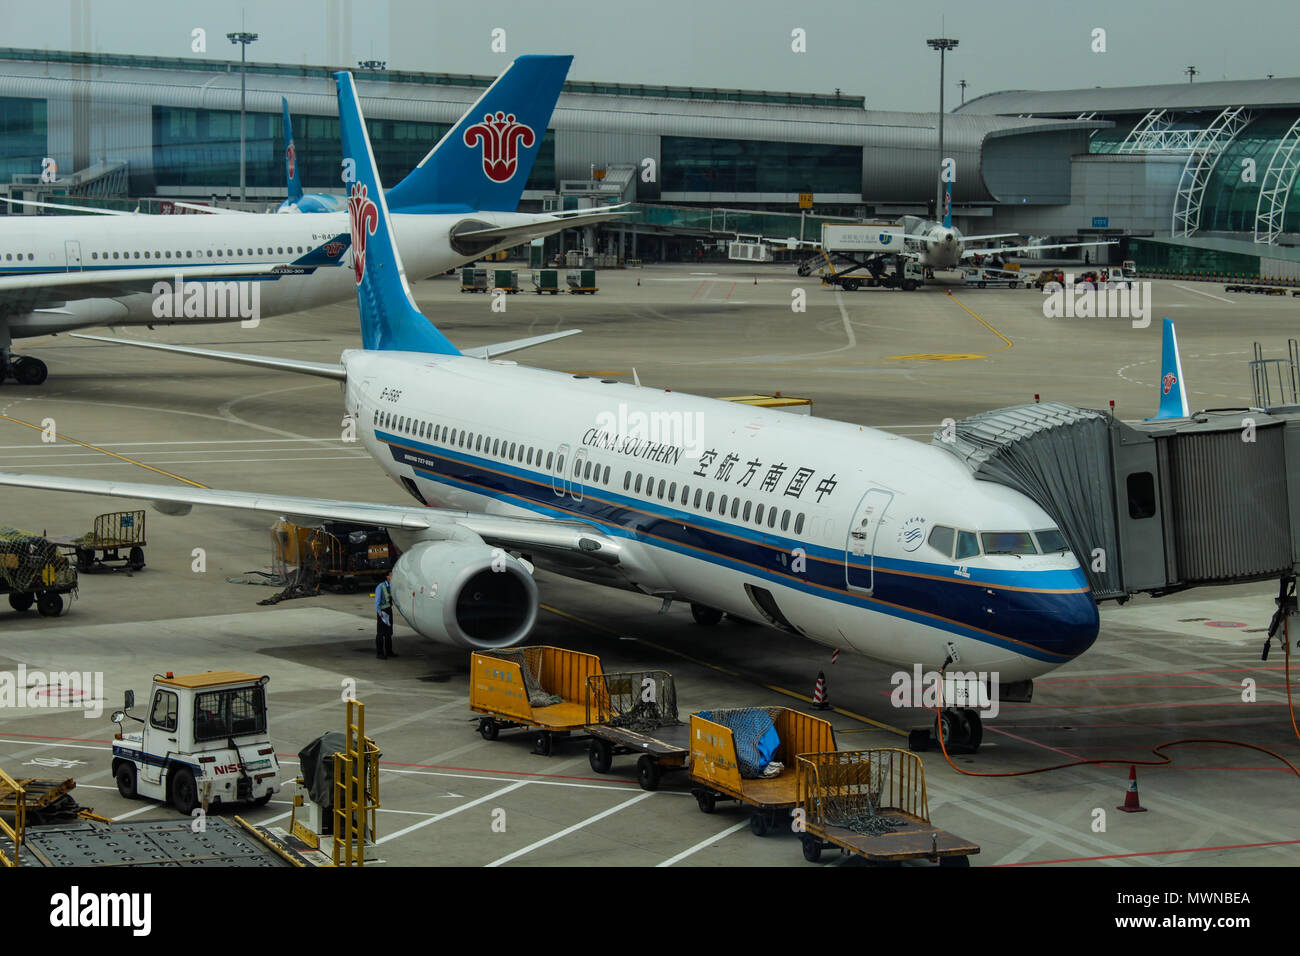 Wuhan, China - March 14, 2018: China Southern airplanes parked at Wuhan airport Stock Photo